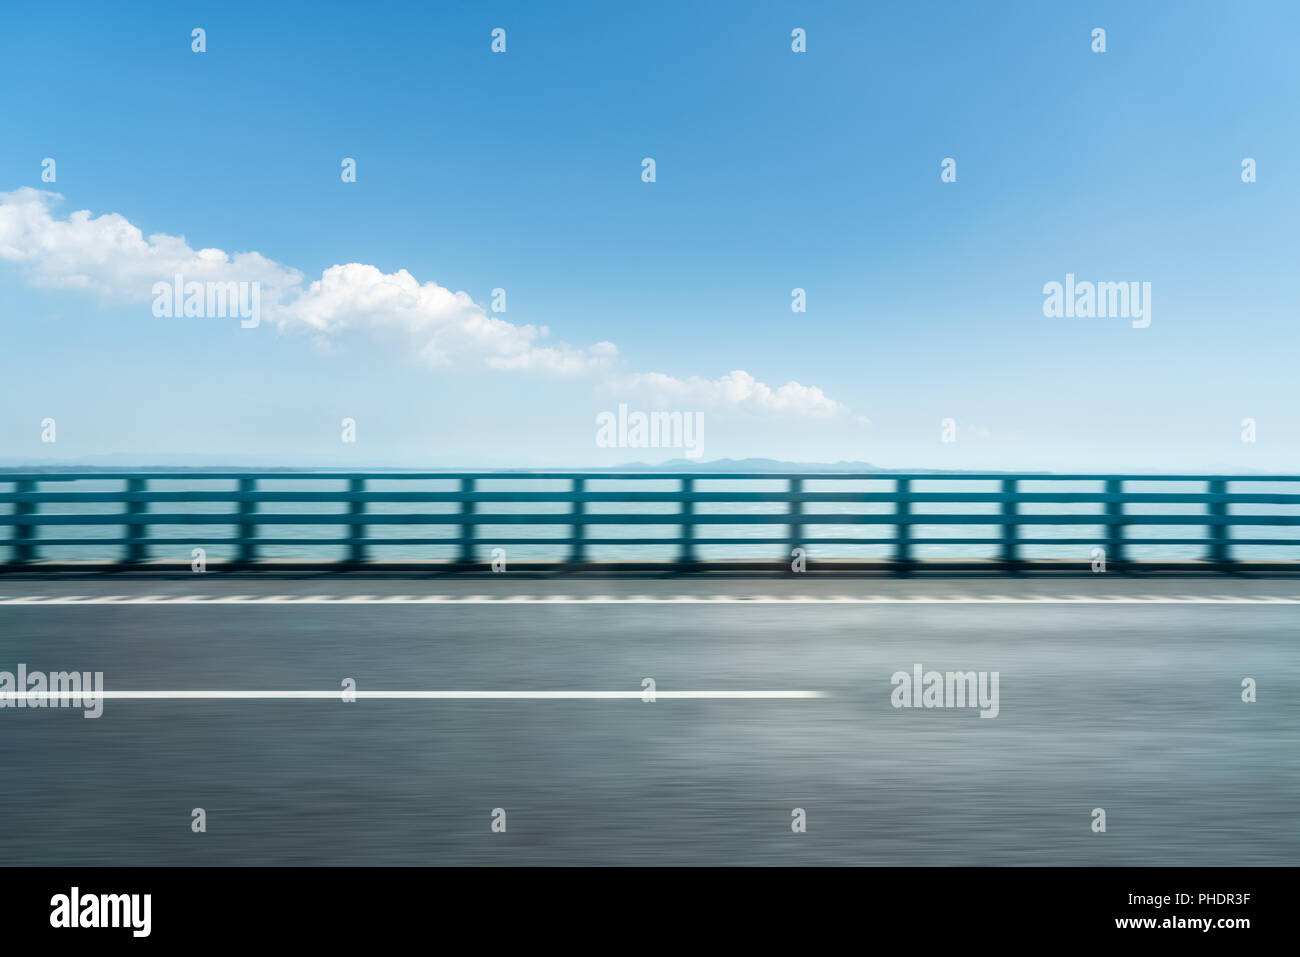 road motion blur background - Stock Image